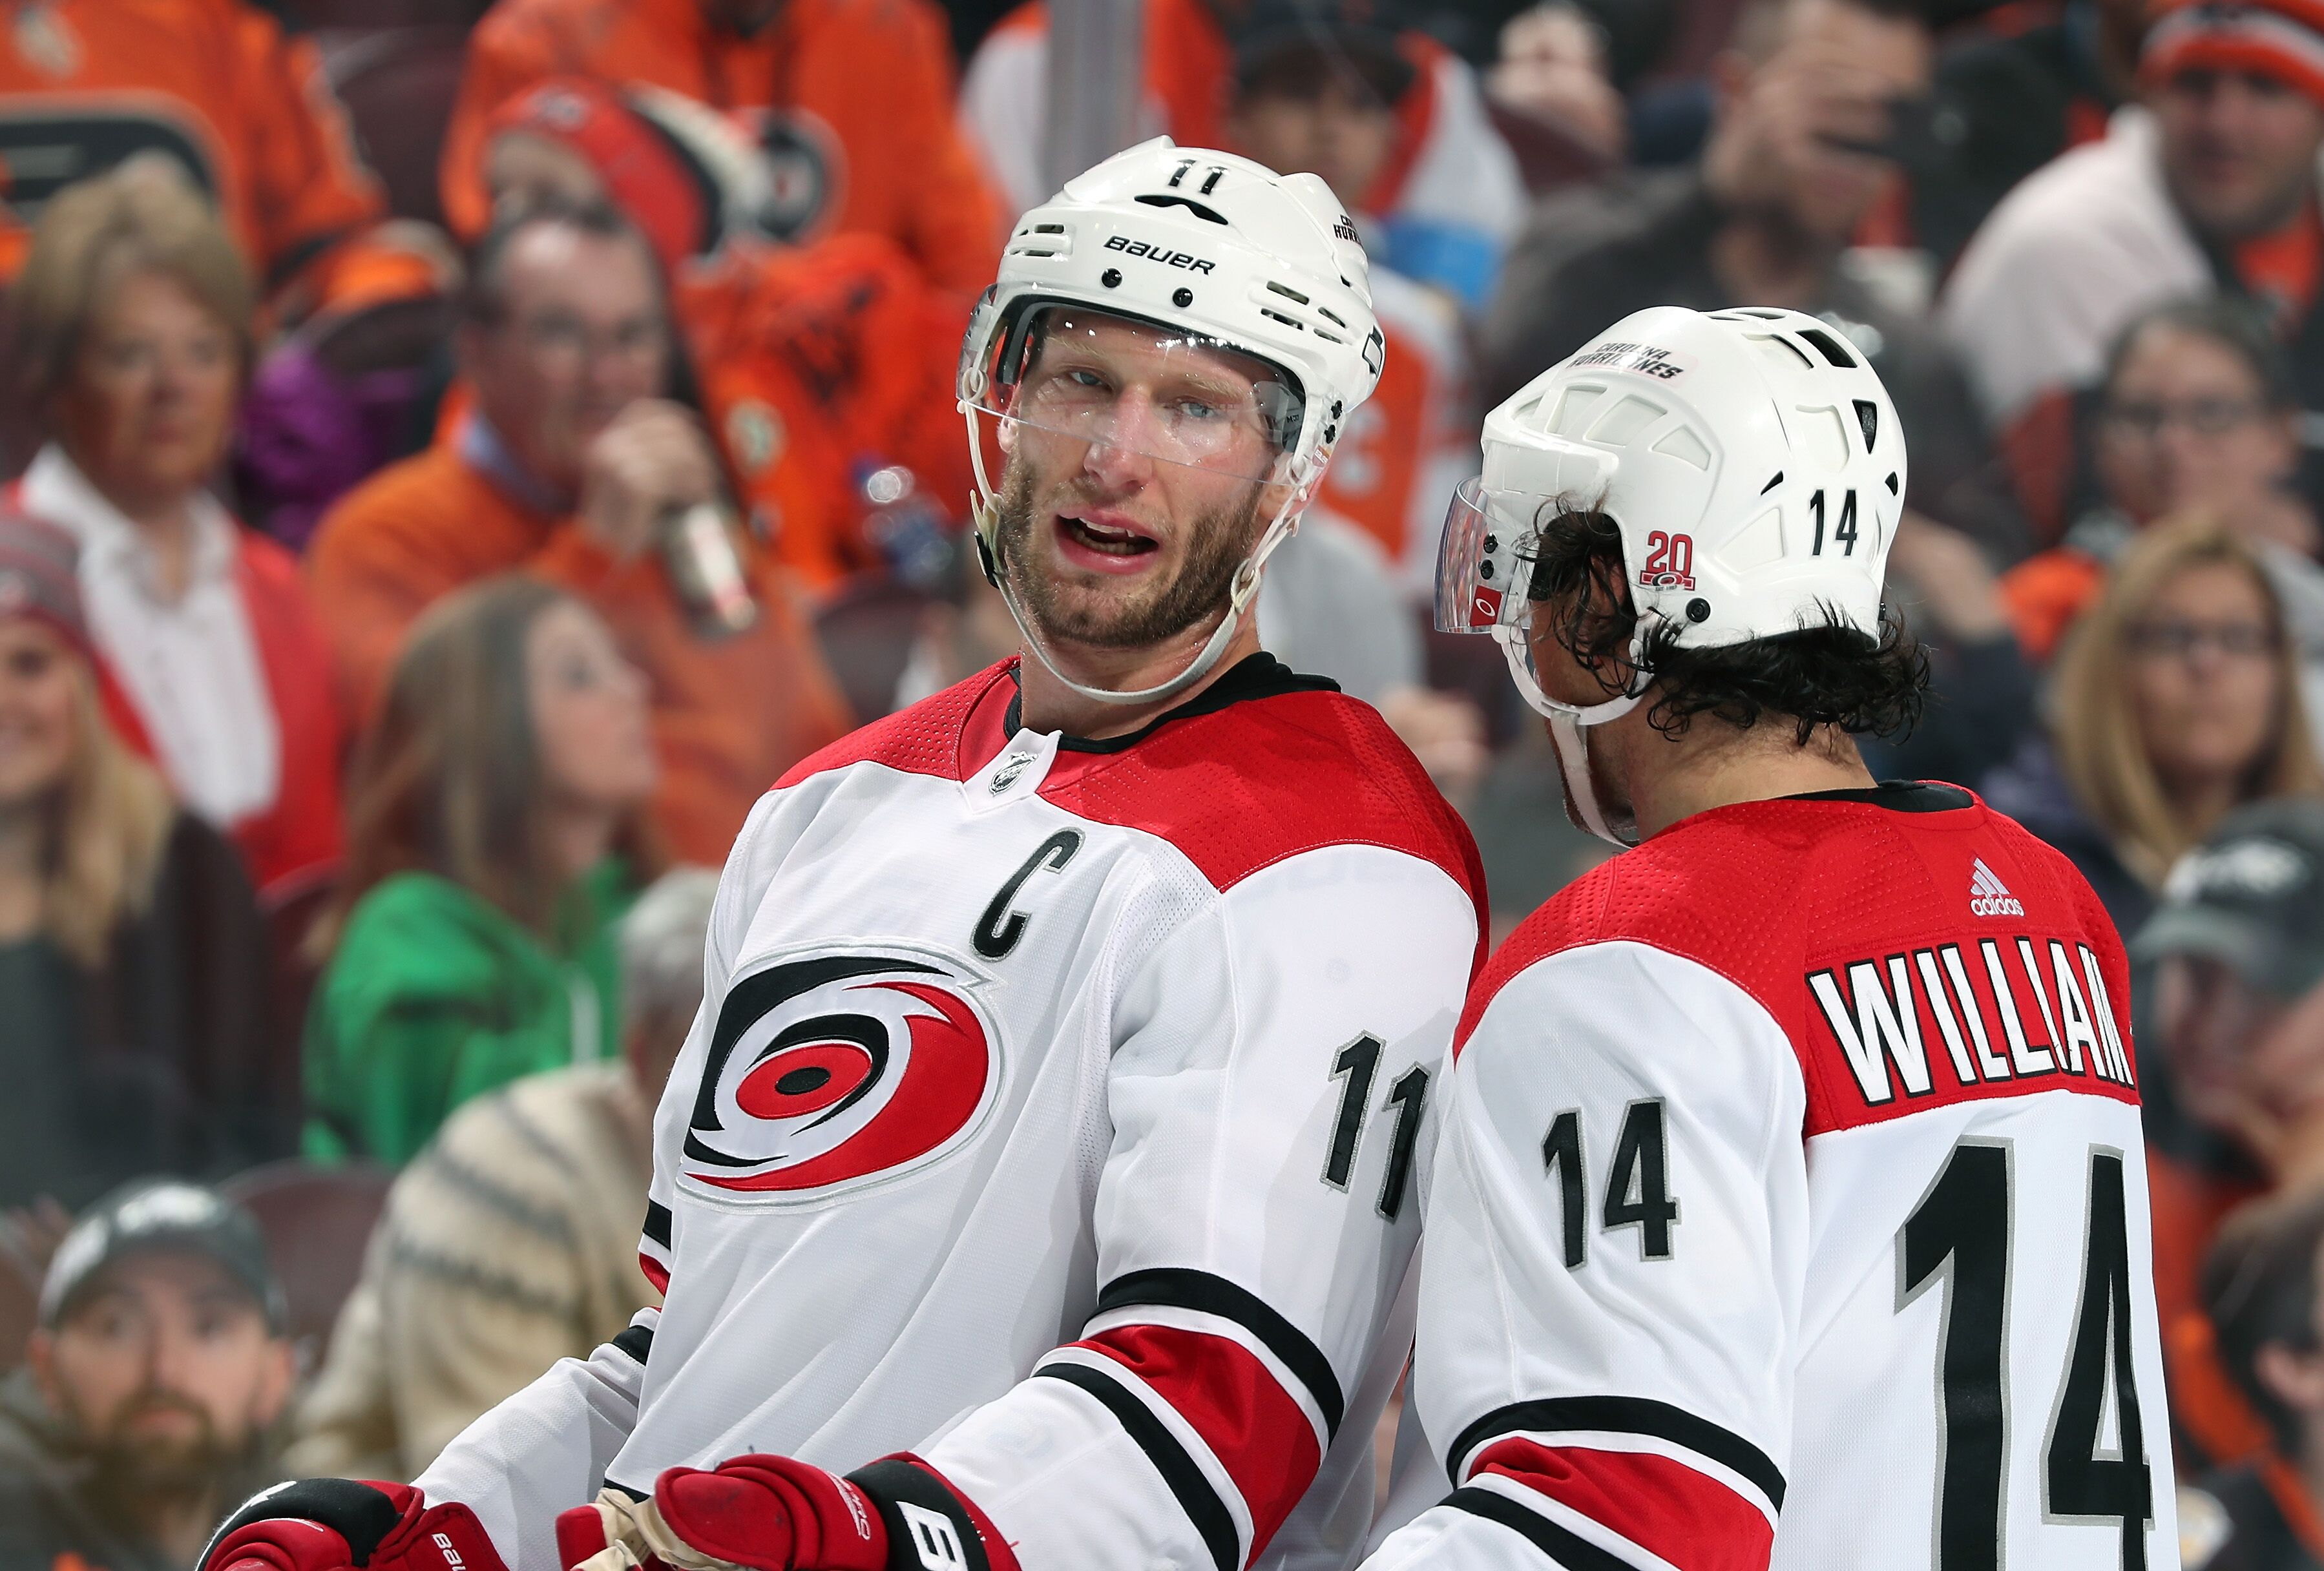 PHILADELPHIA, PA - MARCH 01: Jordan Staal #11 and Justin Williams #14 of the Carolina Hurricanes chat during a stoppage in play against the Philadelphia Flyers on March 1, 2018 at the Wells Fargo Center in Philadelphia, Pennsylvania. (Photo by Len Redkoles/NHLI via Getty Images)